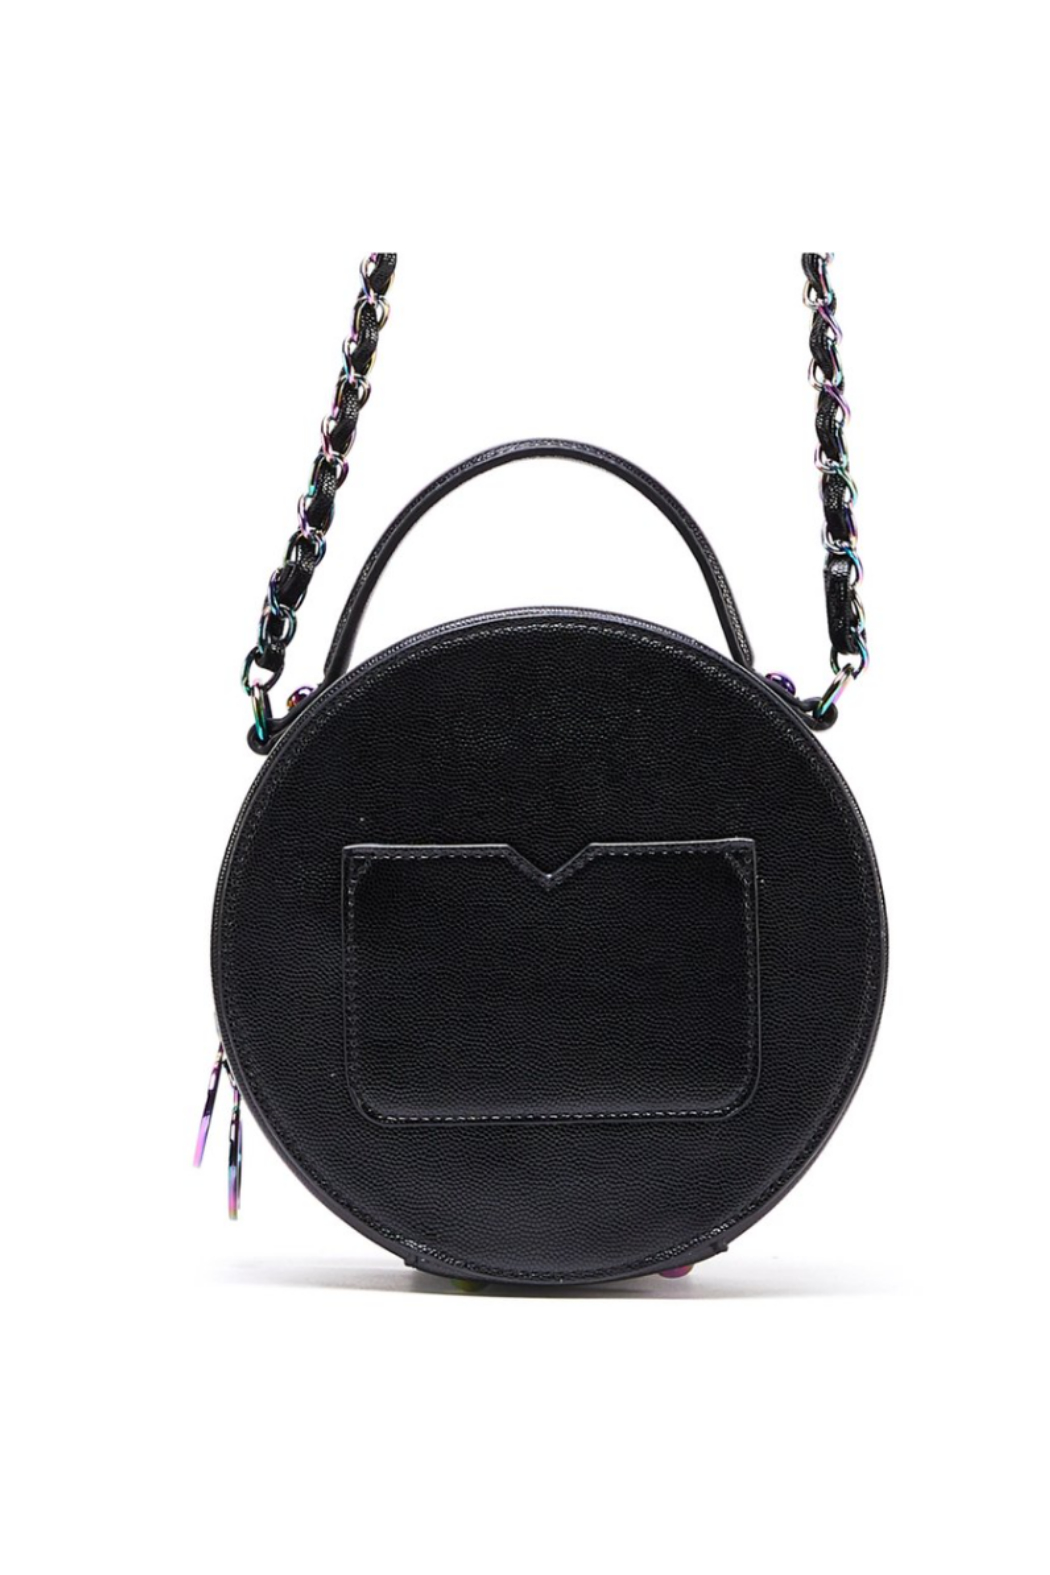 Like Dreams MIRA CANTEEN ROUND CROSSBODY - Side Cropped Image